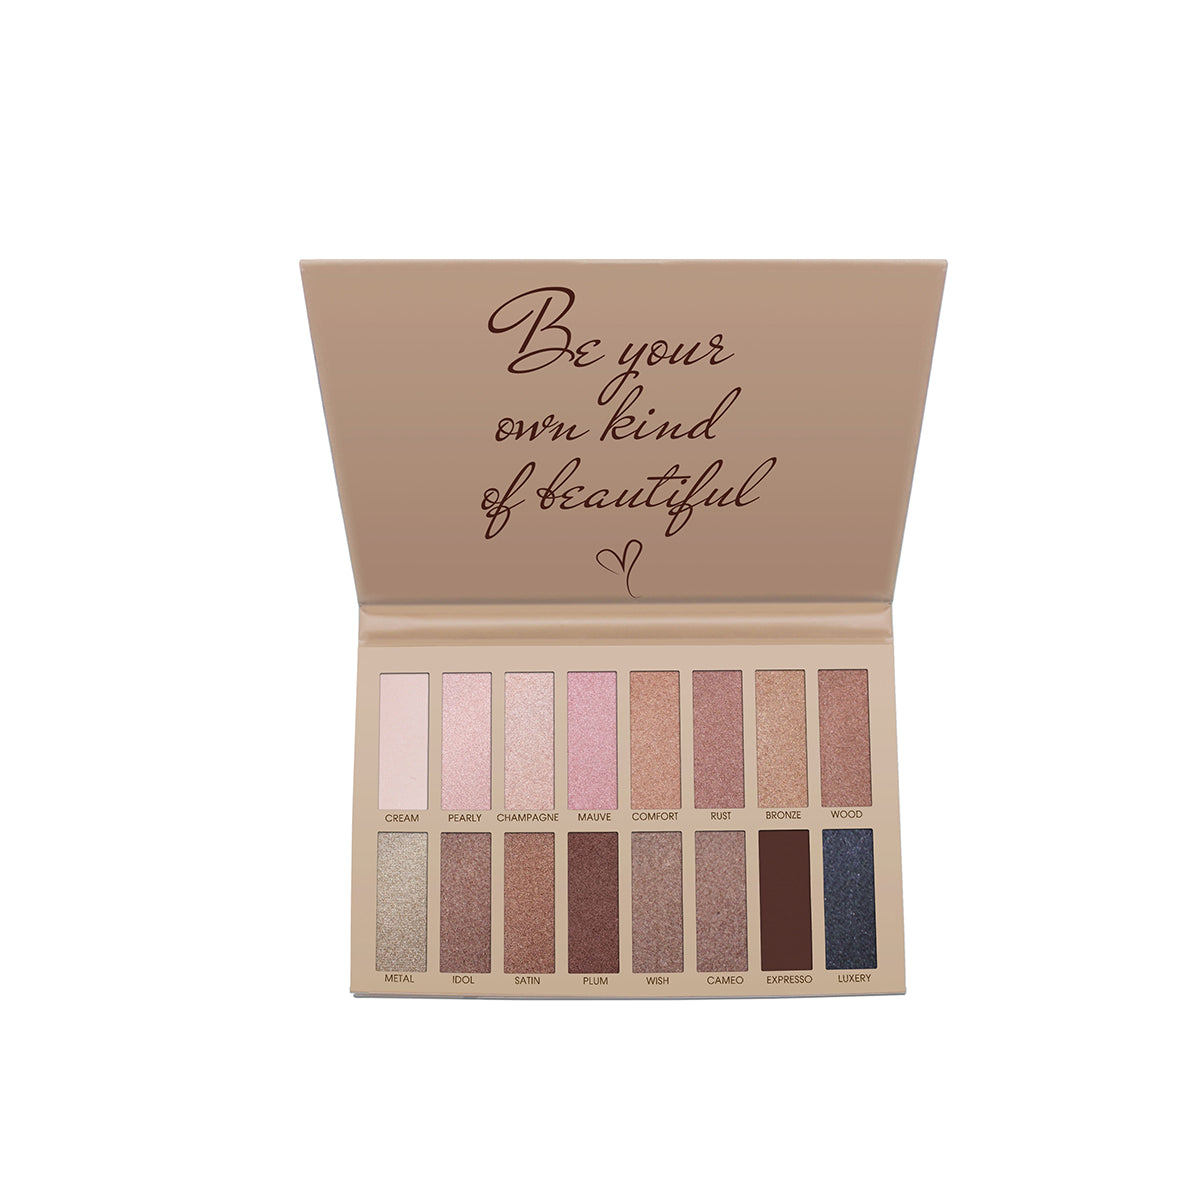 Exposed Eyeshadow Palette from Lamora Beauty